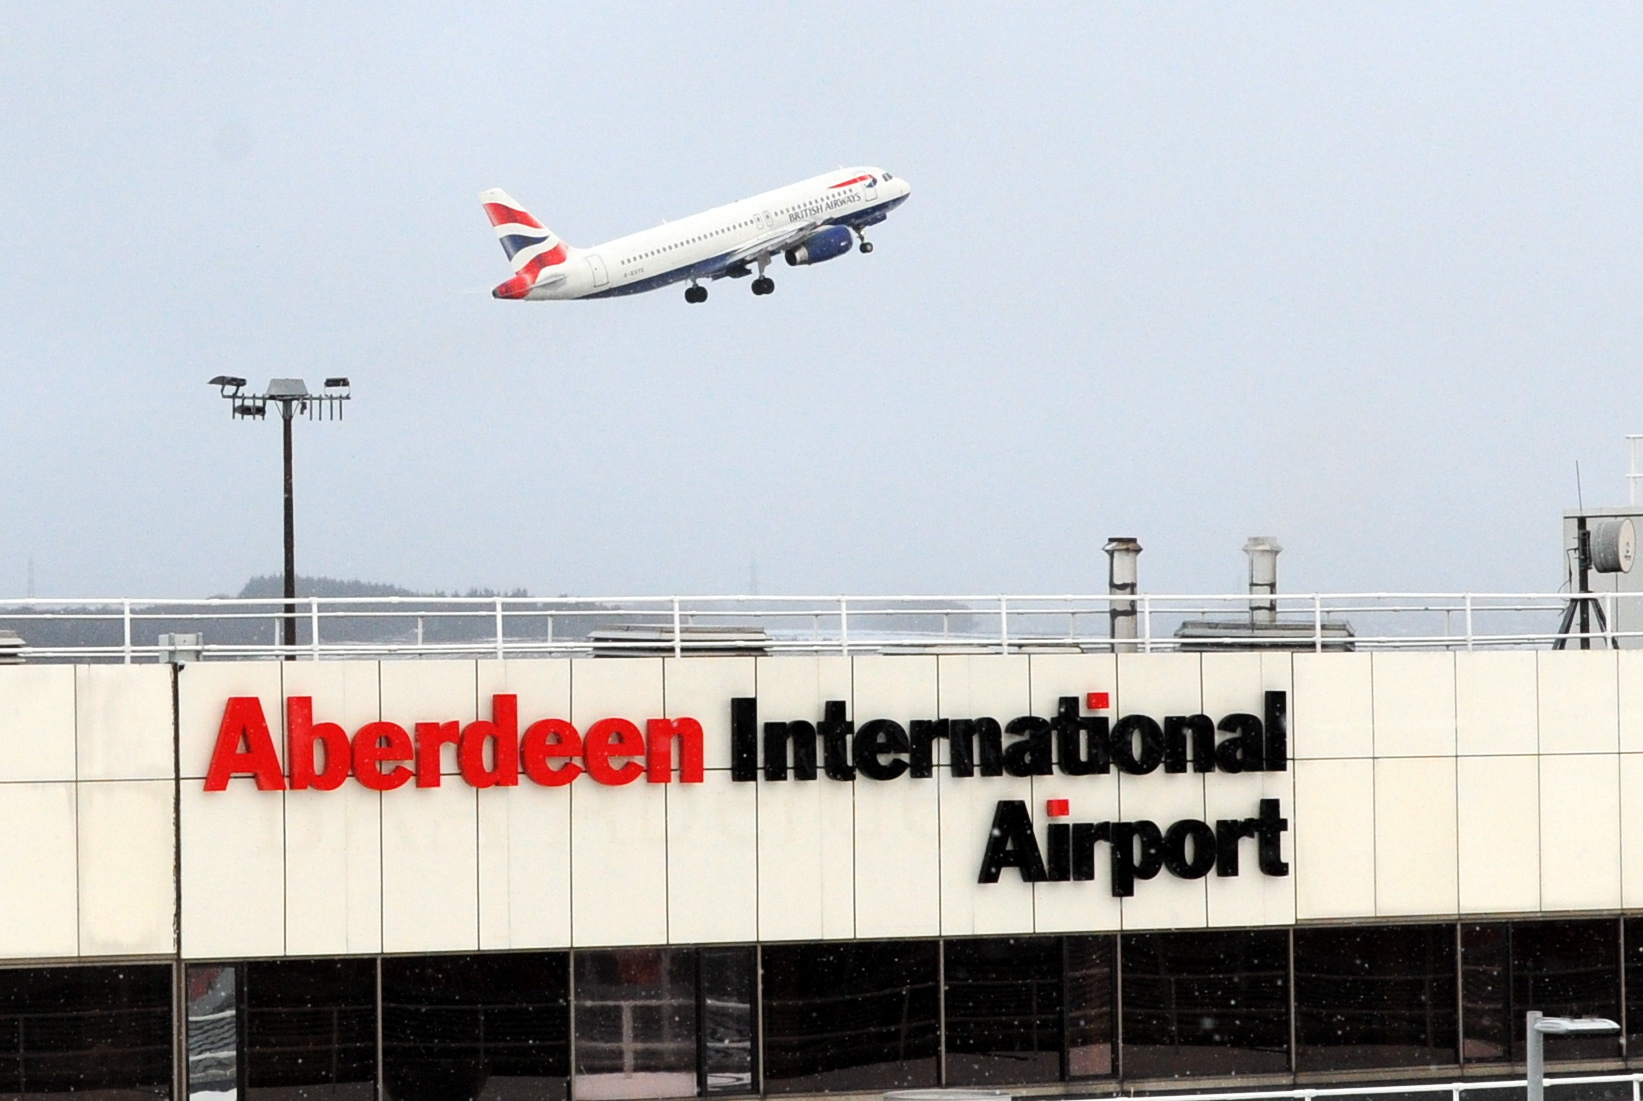 Passenger numbers at Aberdeen International Airport are continuing to fall.